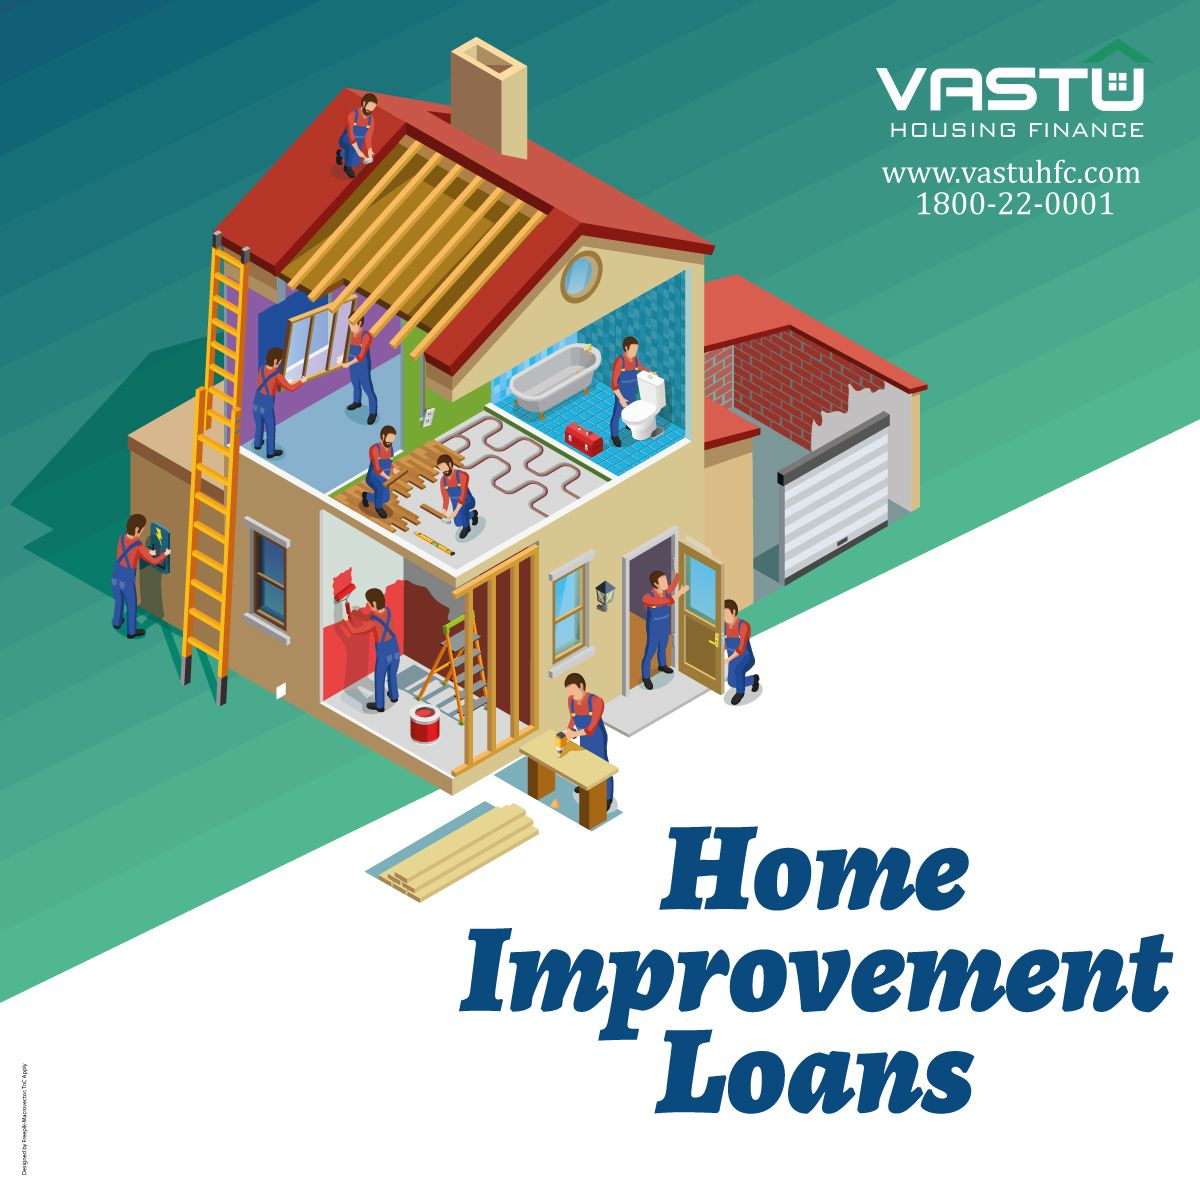 Vastu Home Improvement Loans Helps You Redesign Your Home Just